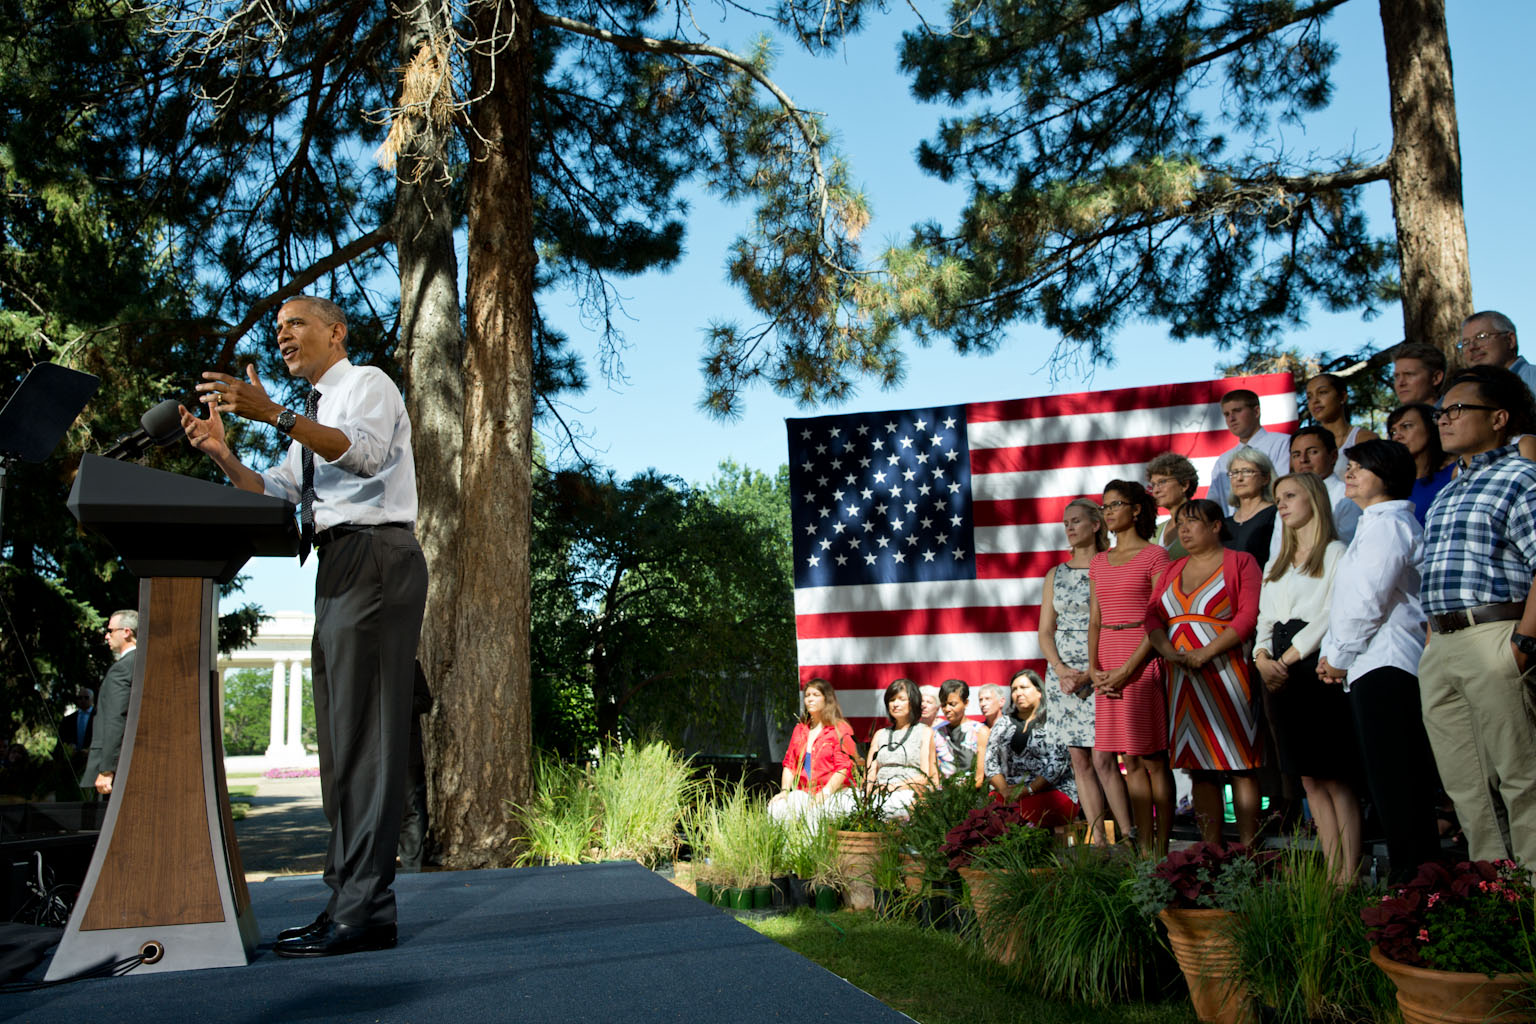 President Obama makes remarks on the economy at Cheesman Park in Denver, Colorado